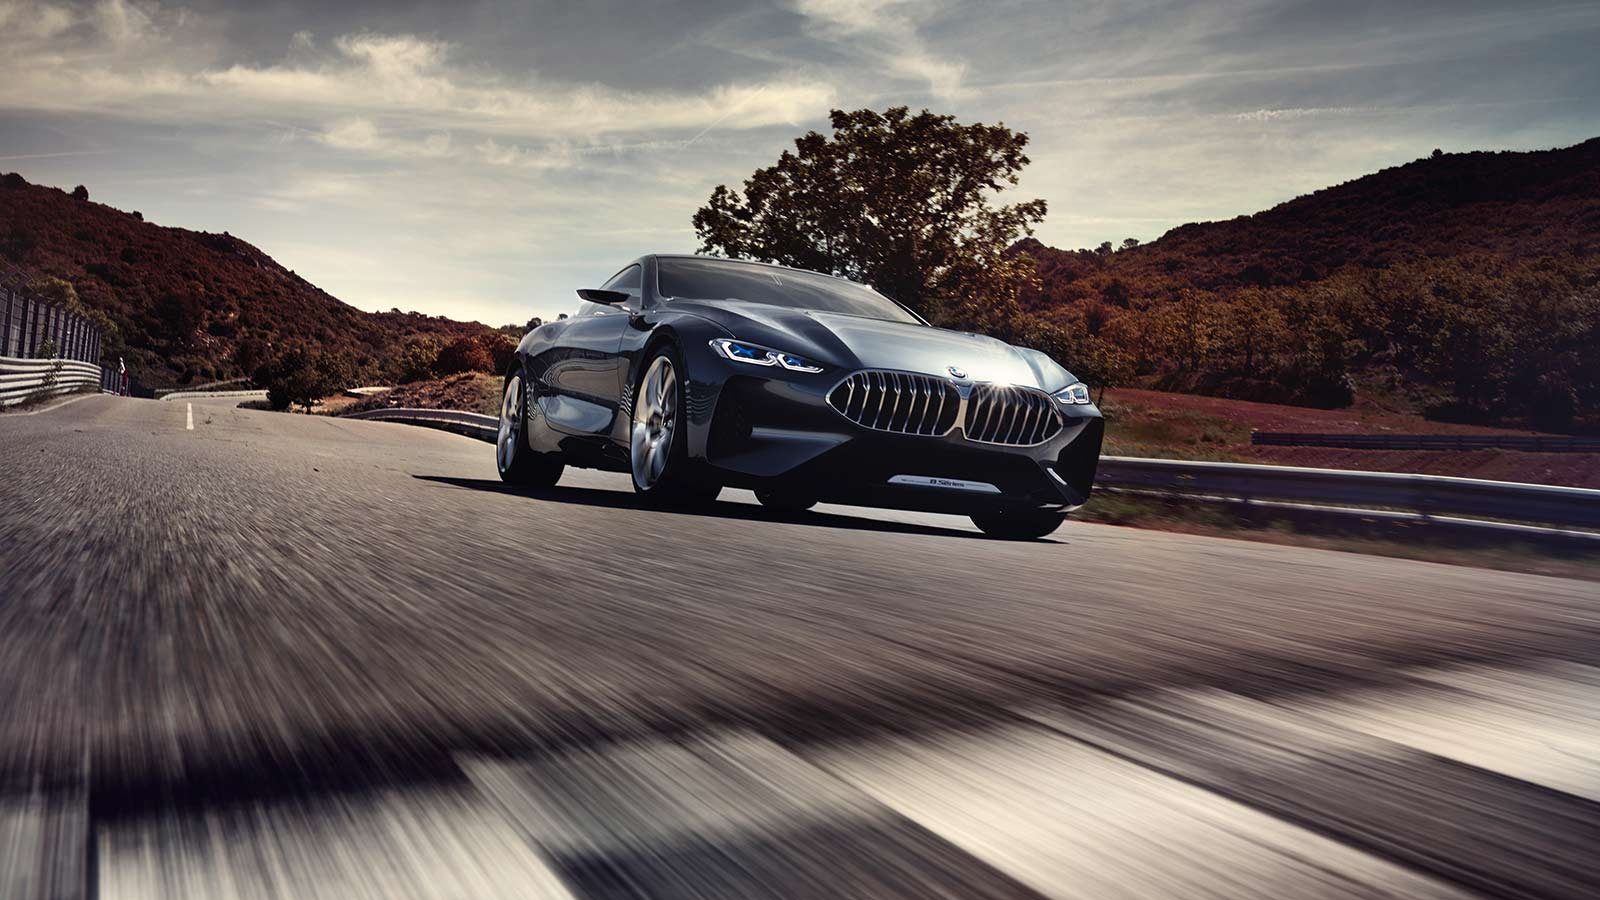 Luxury cars and gadgets, BMW